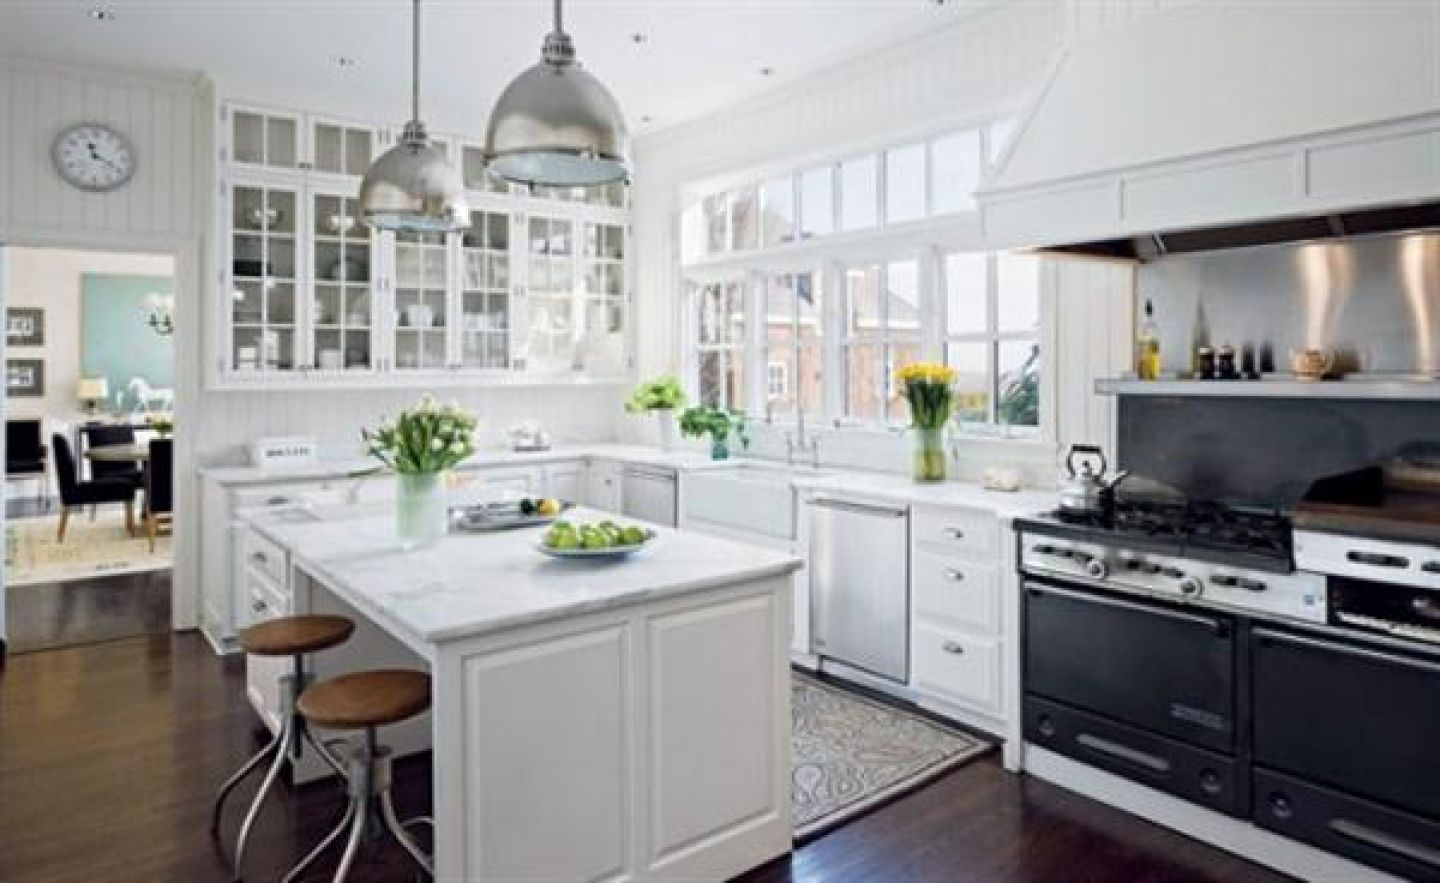 7223-luxury-white-kitchen-design-trend-2011-white-italian-kitchen_1440x900.jpg